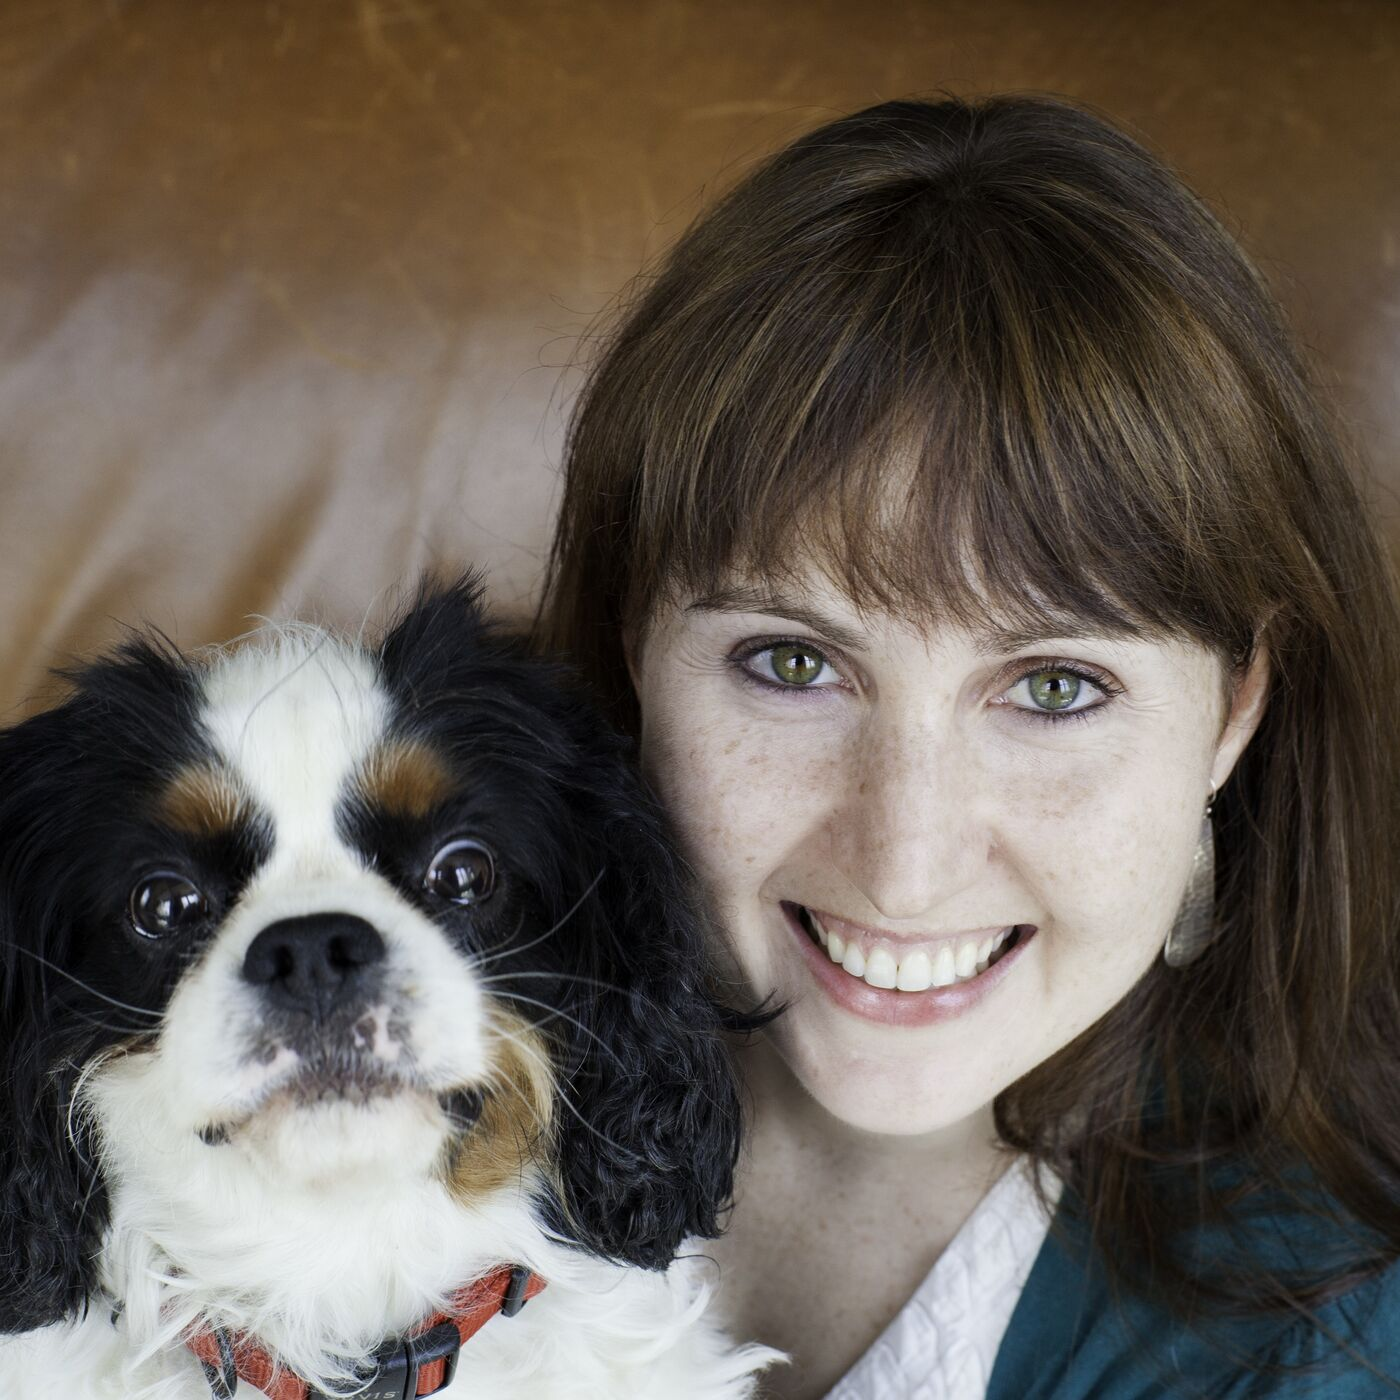 0202: Science Writer Emily Anthes